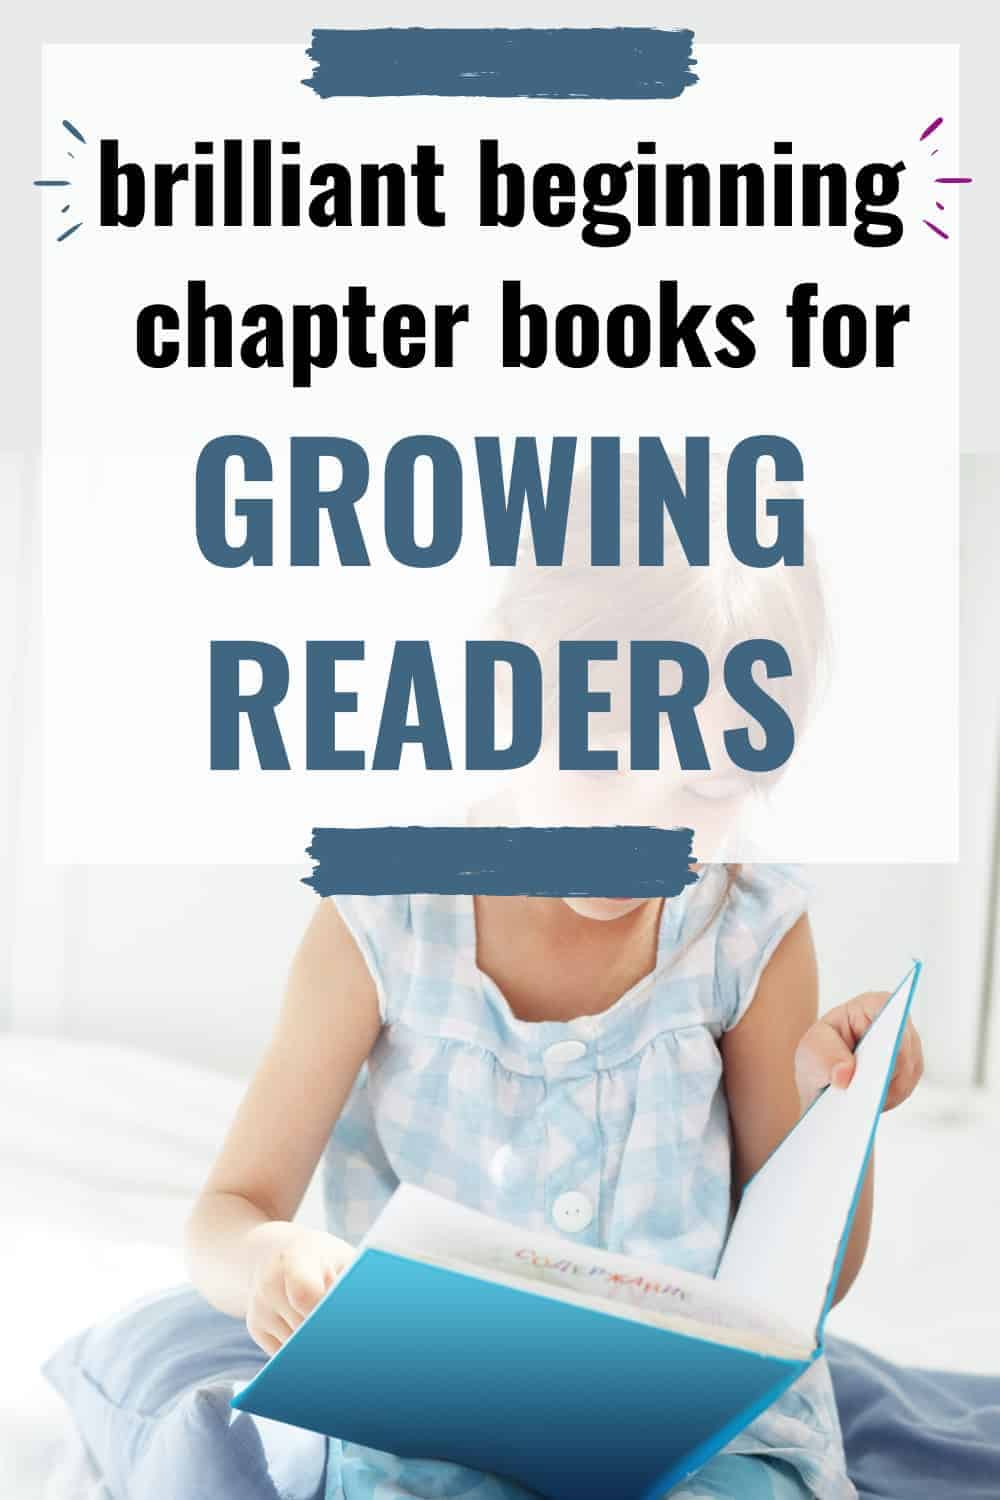 the best beginning chapter books for 6 and 7 year olds in 1st and 2nd grade